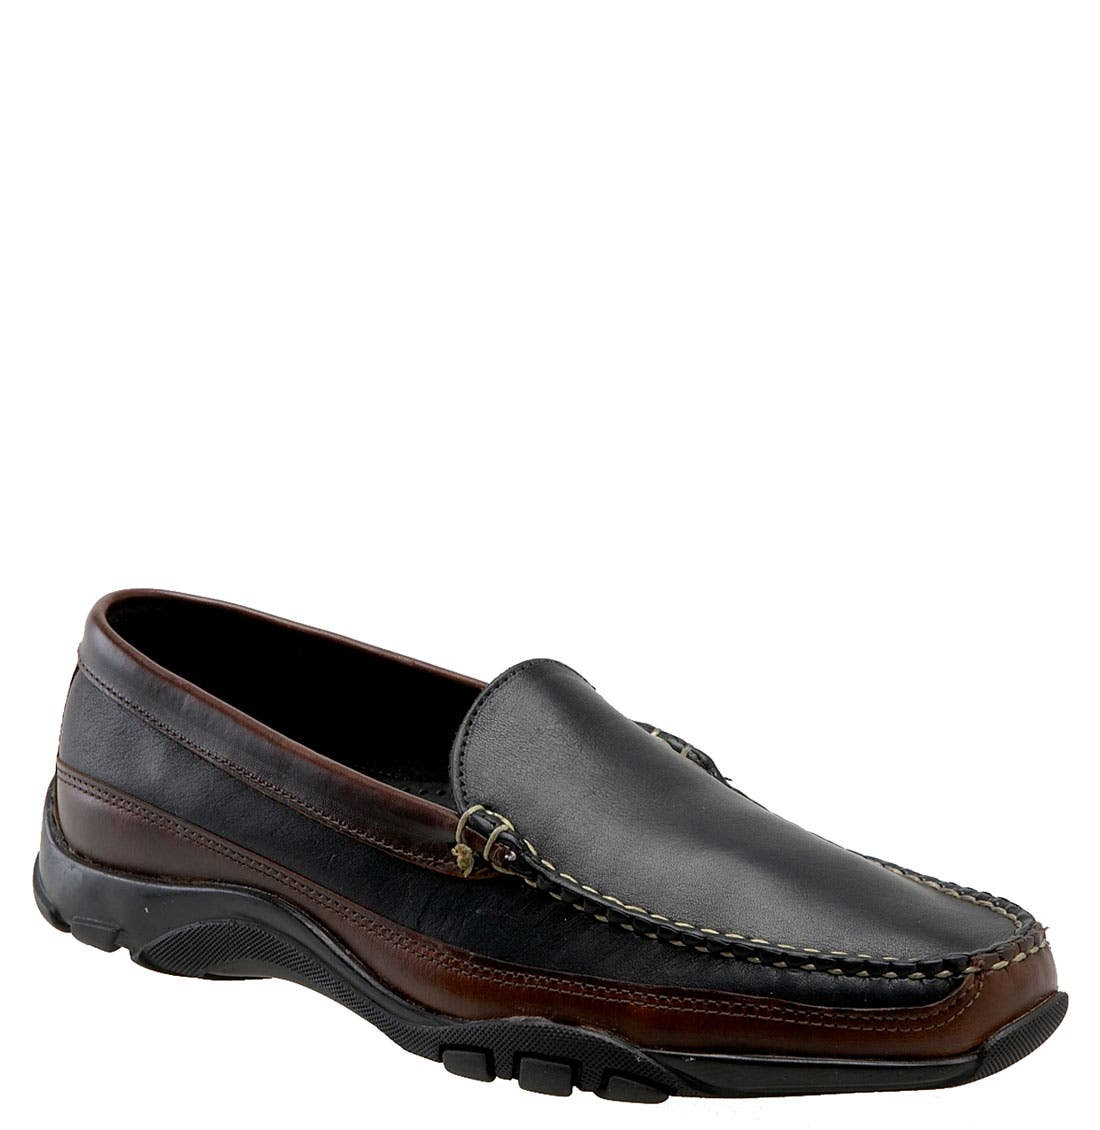 A smart mudguard styles an unlined, moccasin-toe loafer hand-sewn with a durable rubber sole, a slightly squared-off toe and an elongated front for added comfort. Allen Edmonds has been making shoes in America for nearly 100 years using fine leathers, a 212-stepcrafting process and 360 degree Goodyear welt construction to ensure a high-quality product, every time. Style Name: Allen Edmonds Boulder Driving Loafer (Men). Style Number: 291321 3.